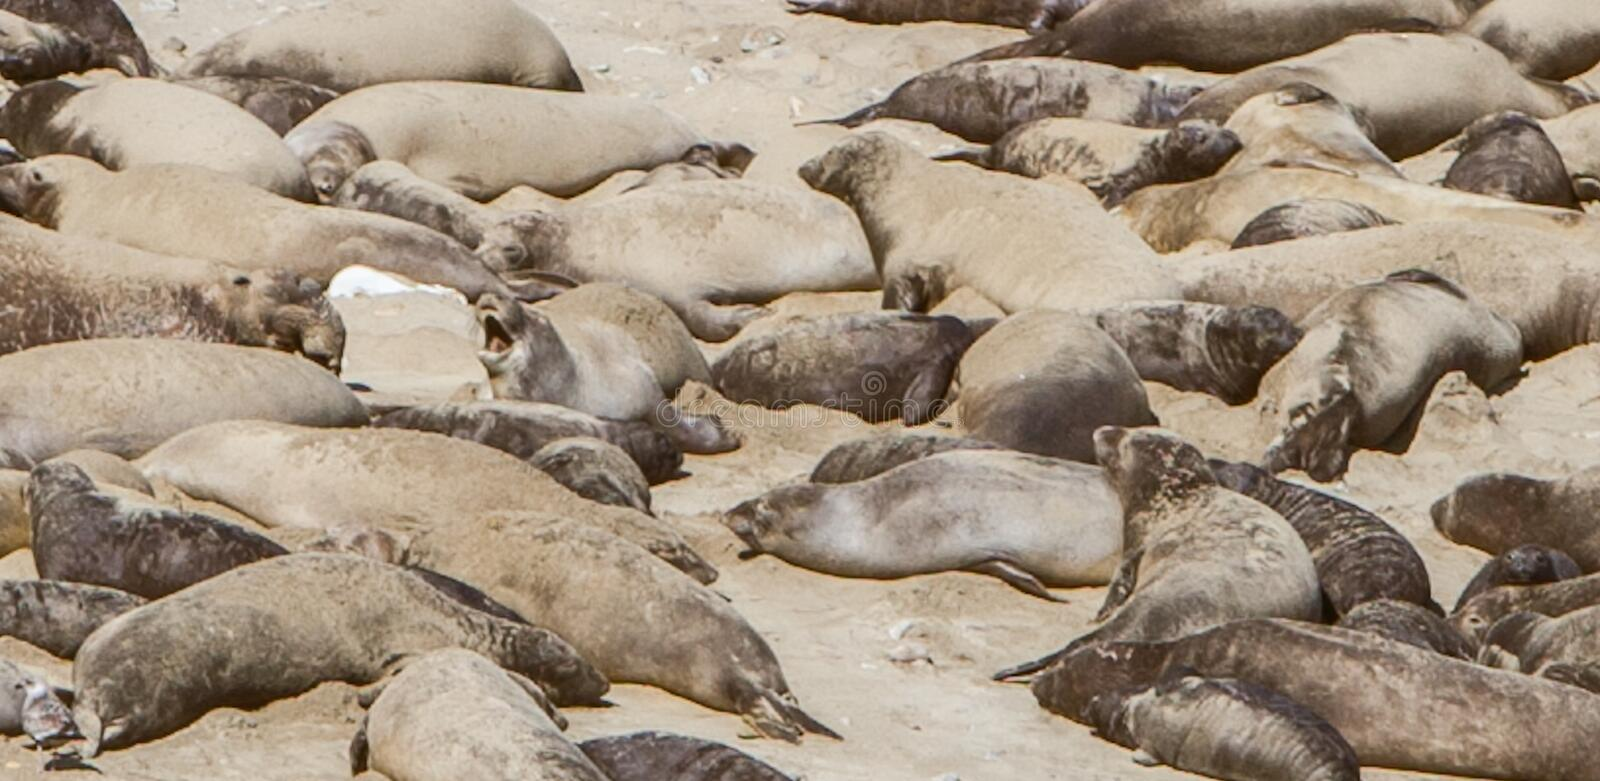 Sea lions sleeping beach. Point Reyes, United States - February 18, 2012 : sea lions laying on the pacific coast beaches relaxing in the sun. A baby is crying stock photography